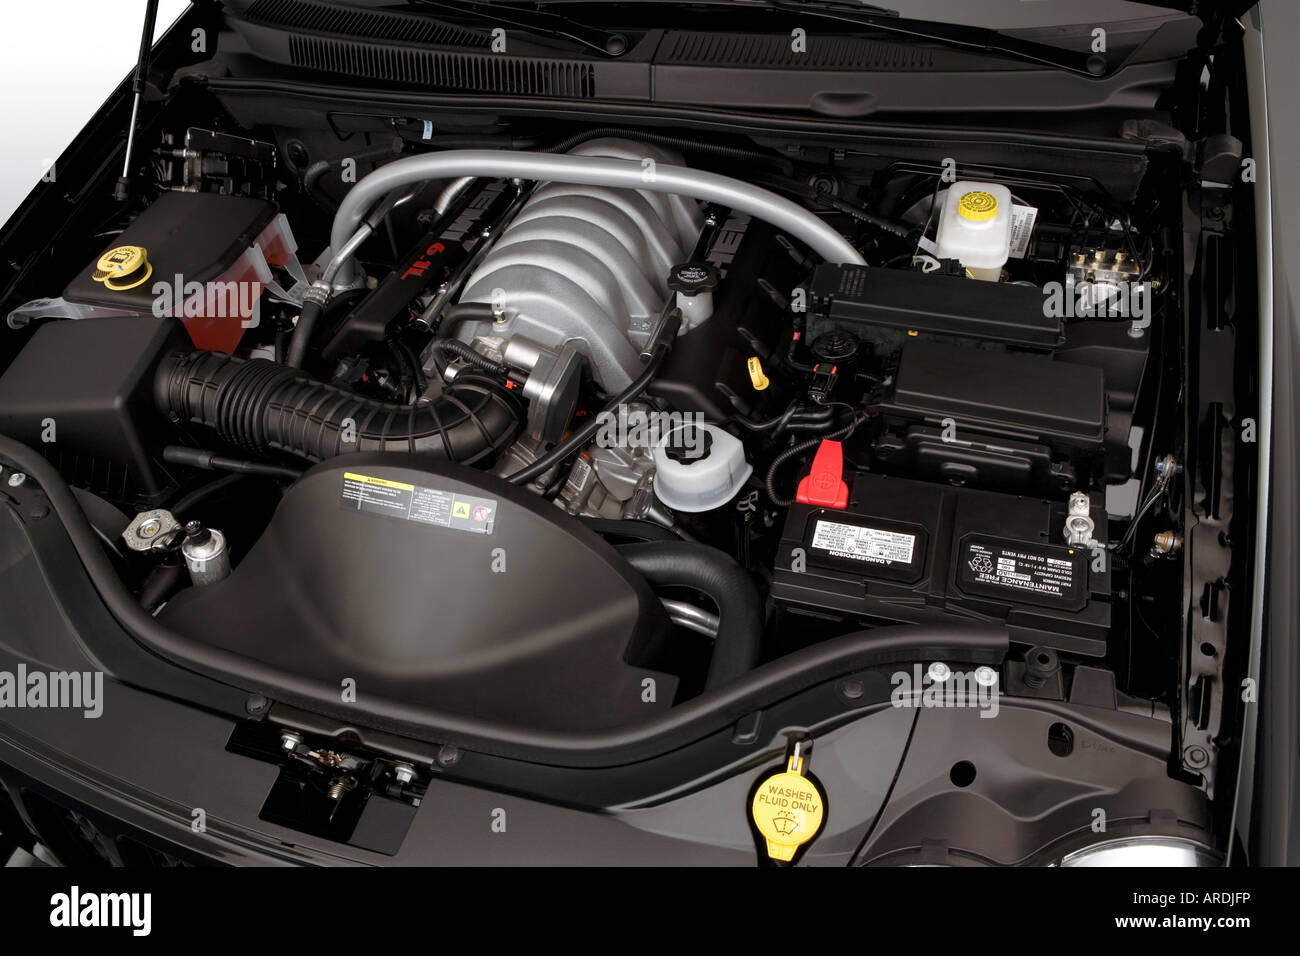 2006 Jeep Grand Cherokee Srt8 In Black Engine Stock Photo Alamy